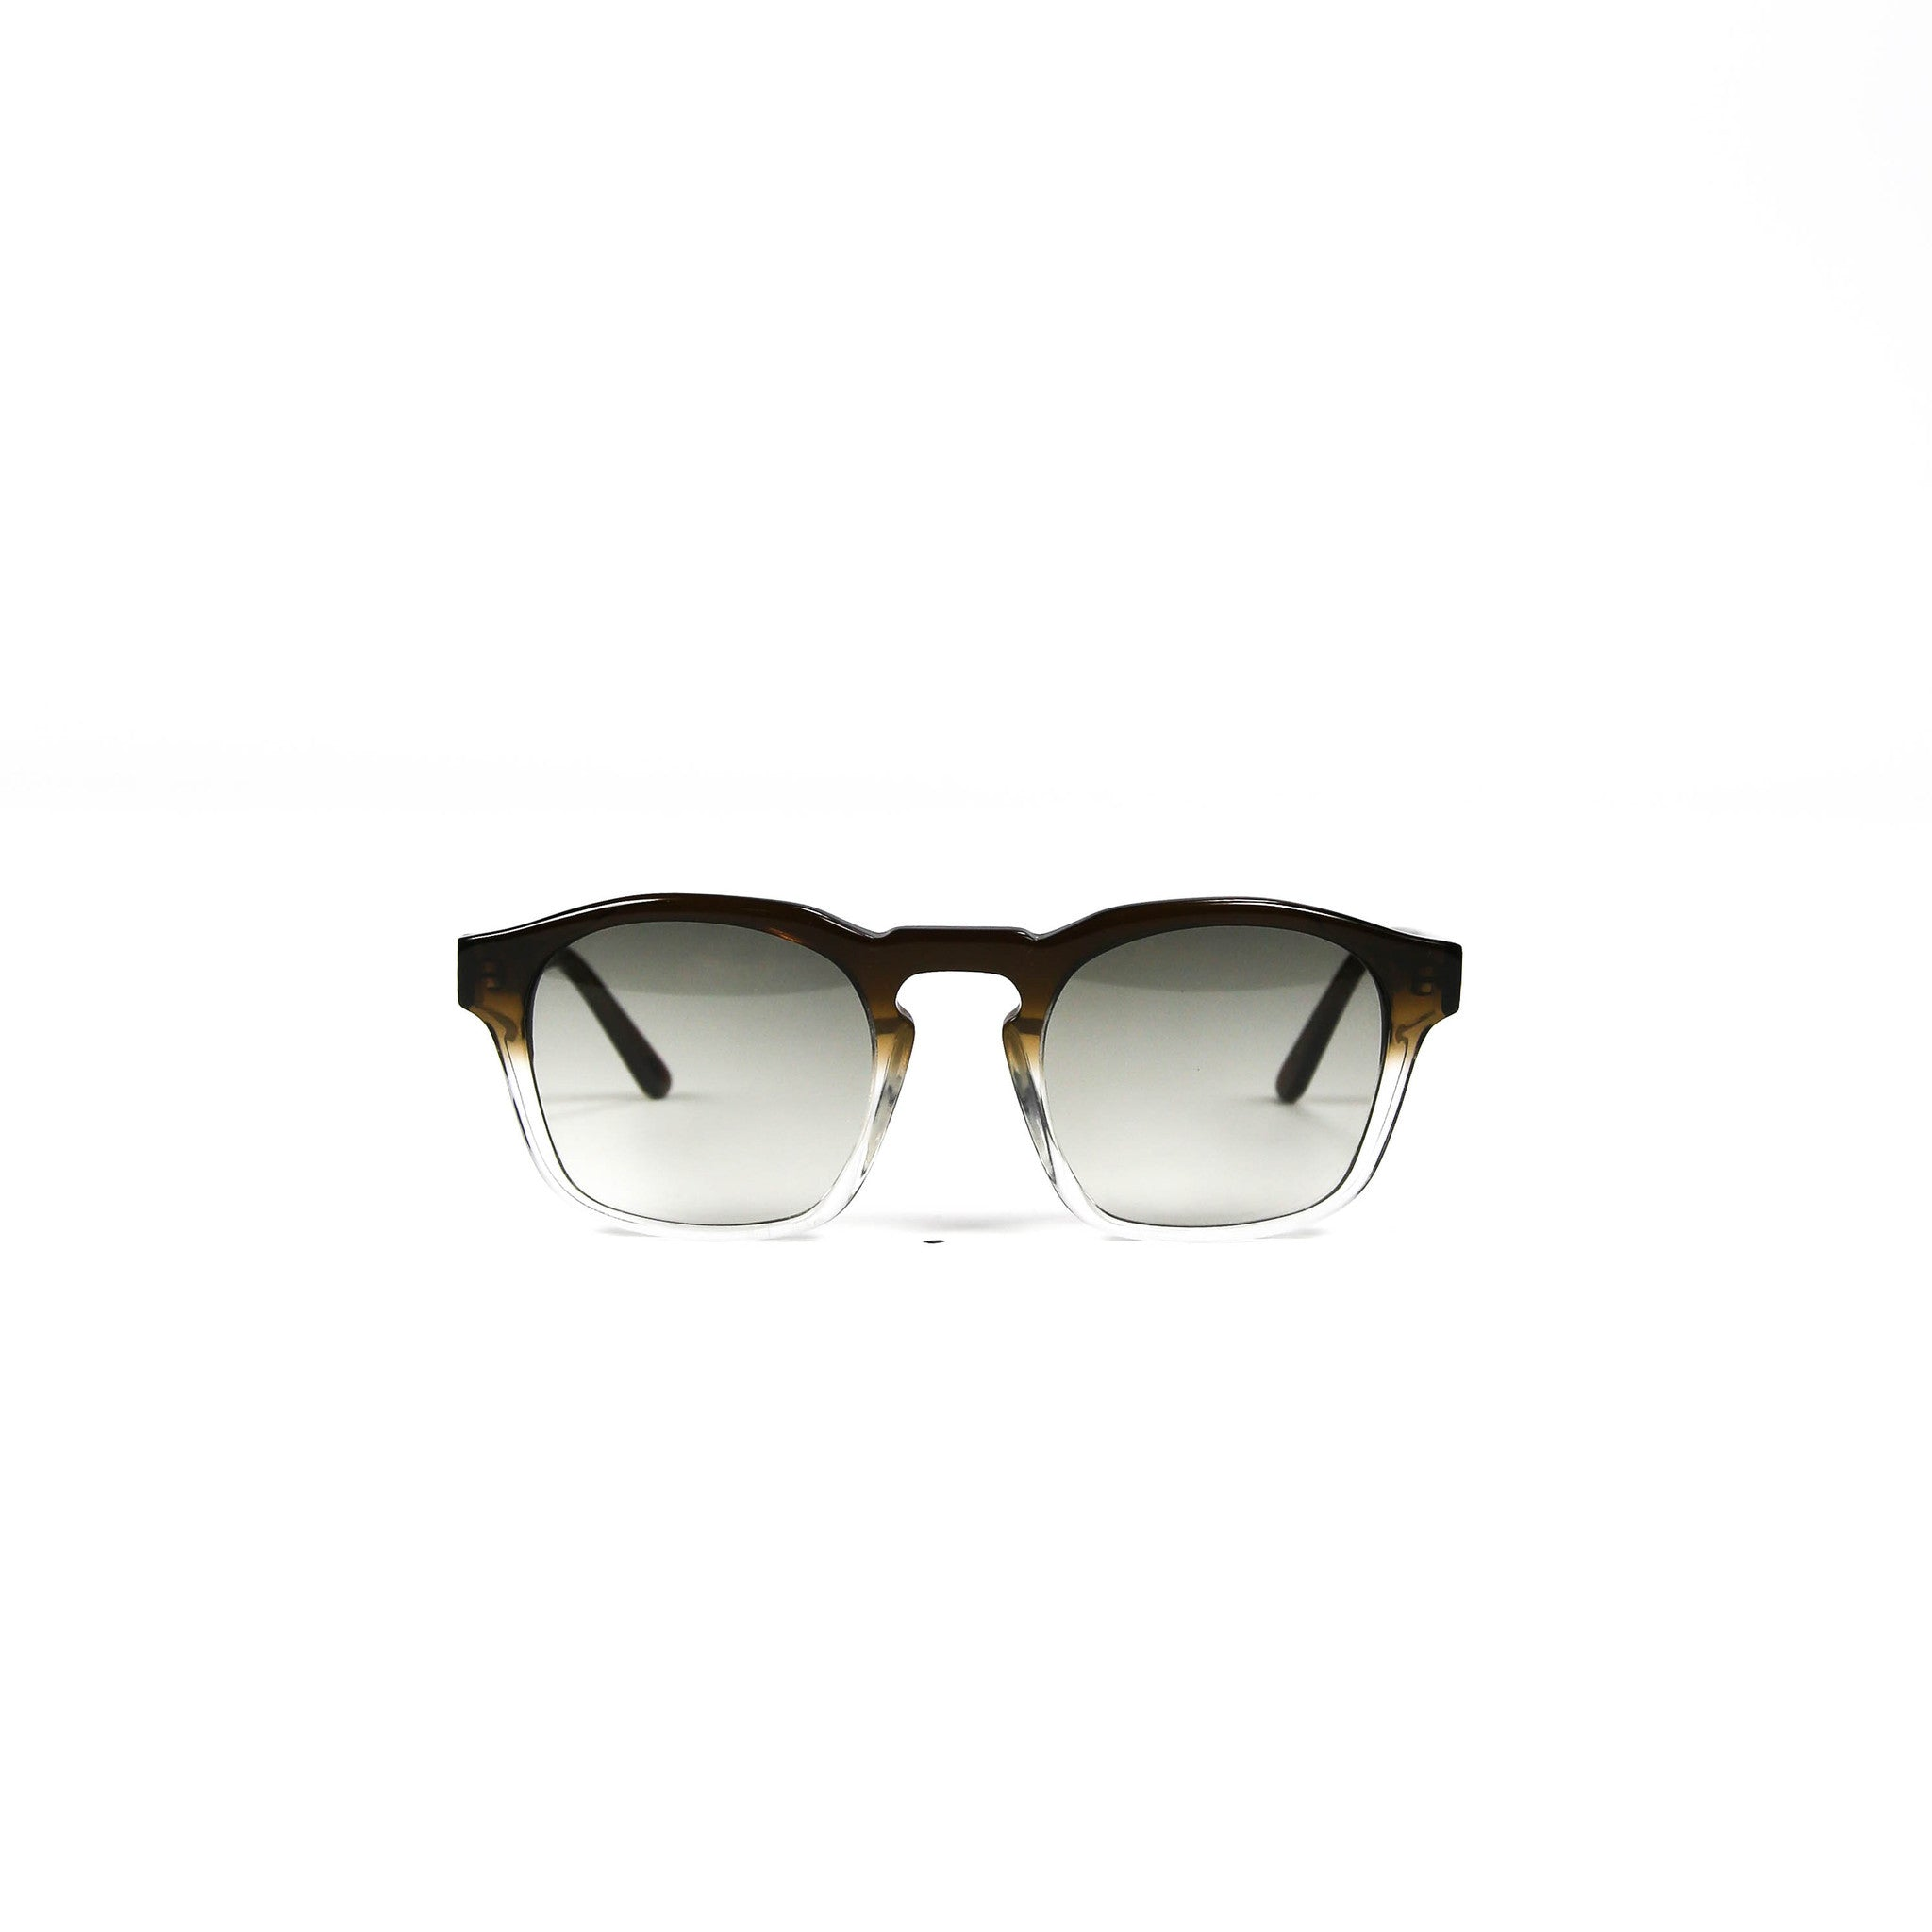 1308 Sunglasses - Brown to Clear